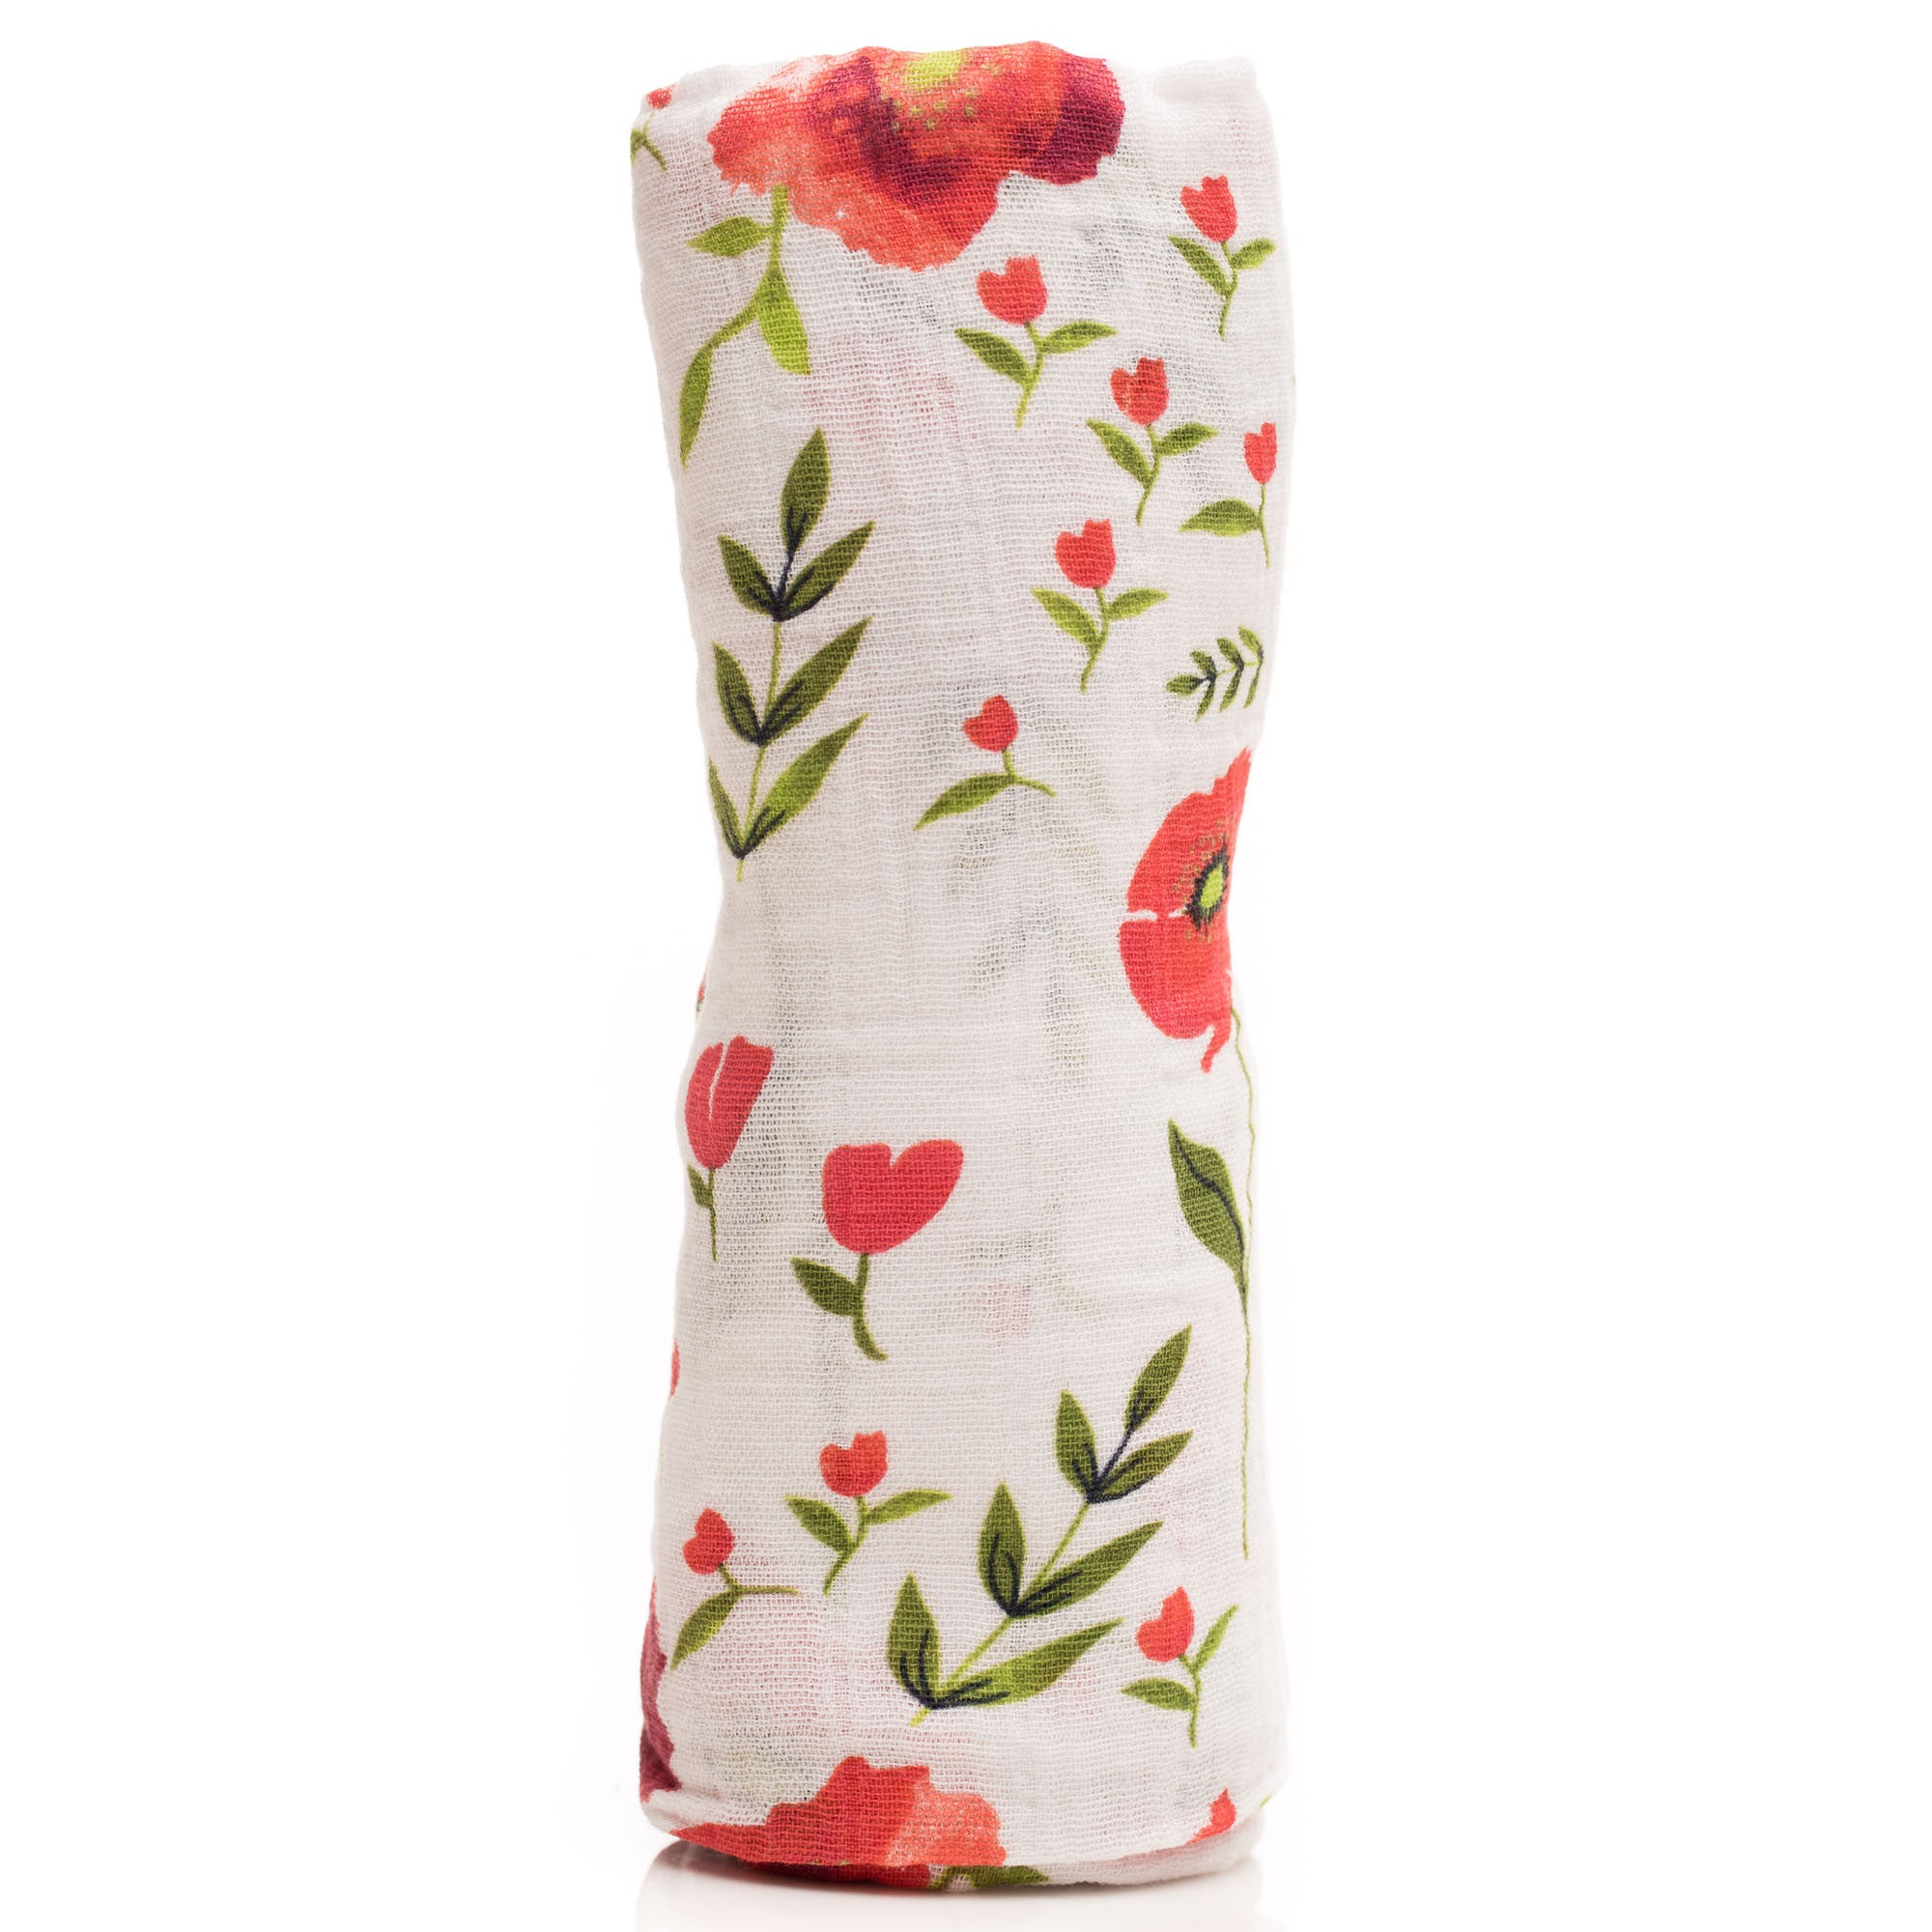 Poppy Swaddle Blanket Best Baby Gifts